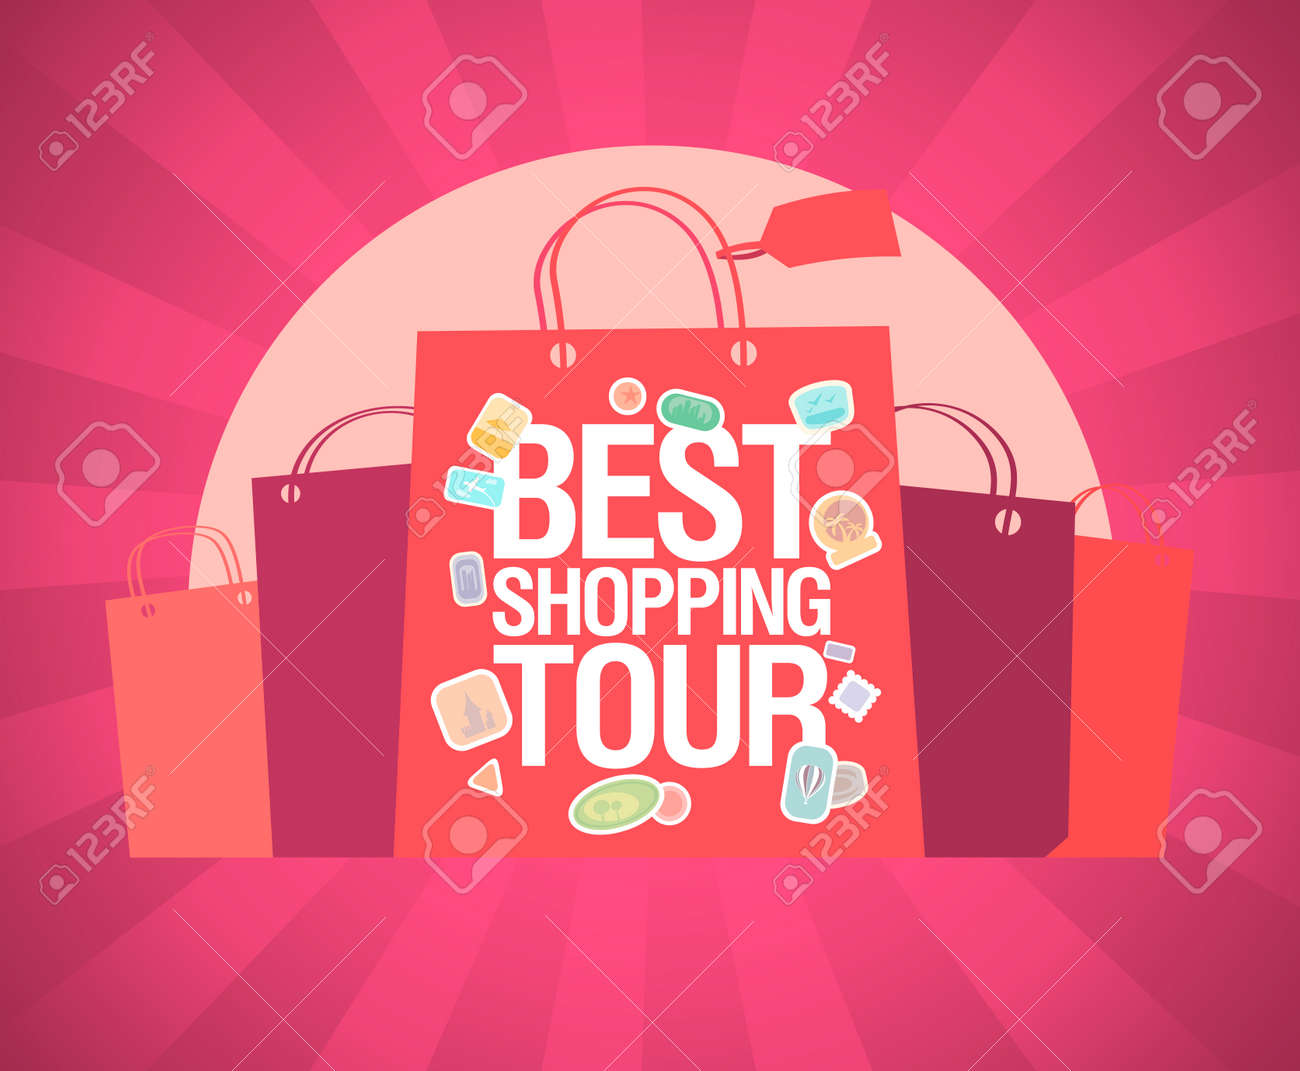 Best Shopping Tour Vector Banner Design Concept With Paper Bags Royalty Free Cliparts Vectors And Stock Illustration Image 128503689